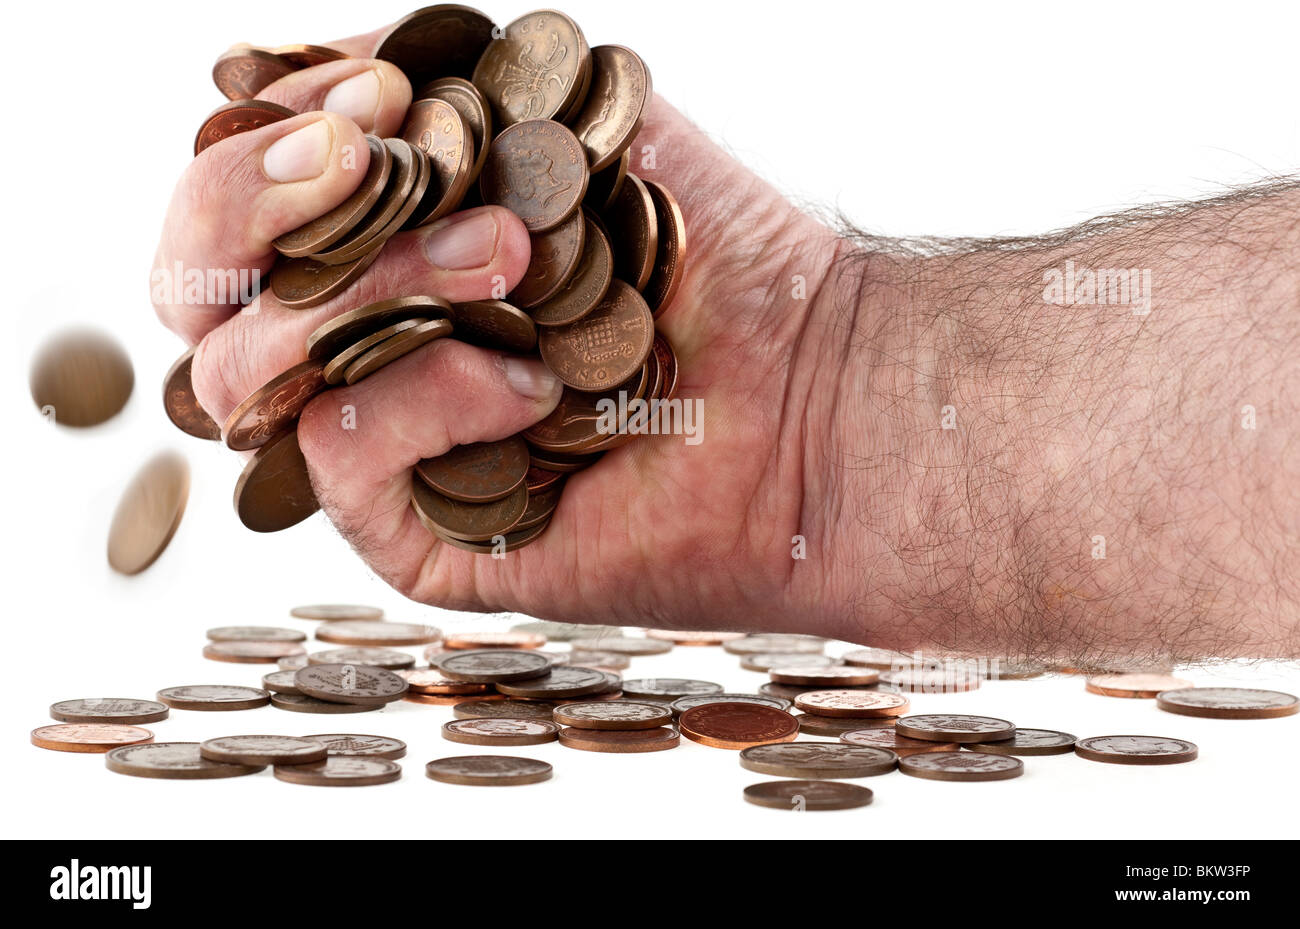 Mans hand stuffed with British currency copper coins - Stock Image